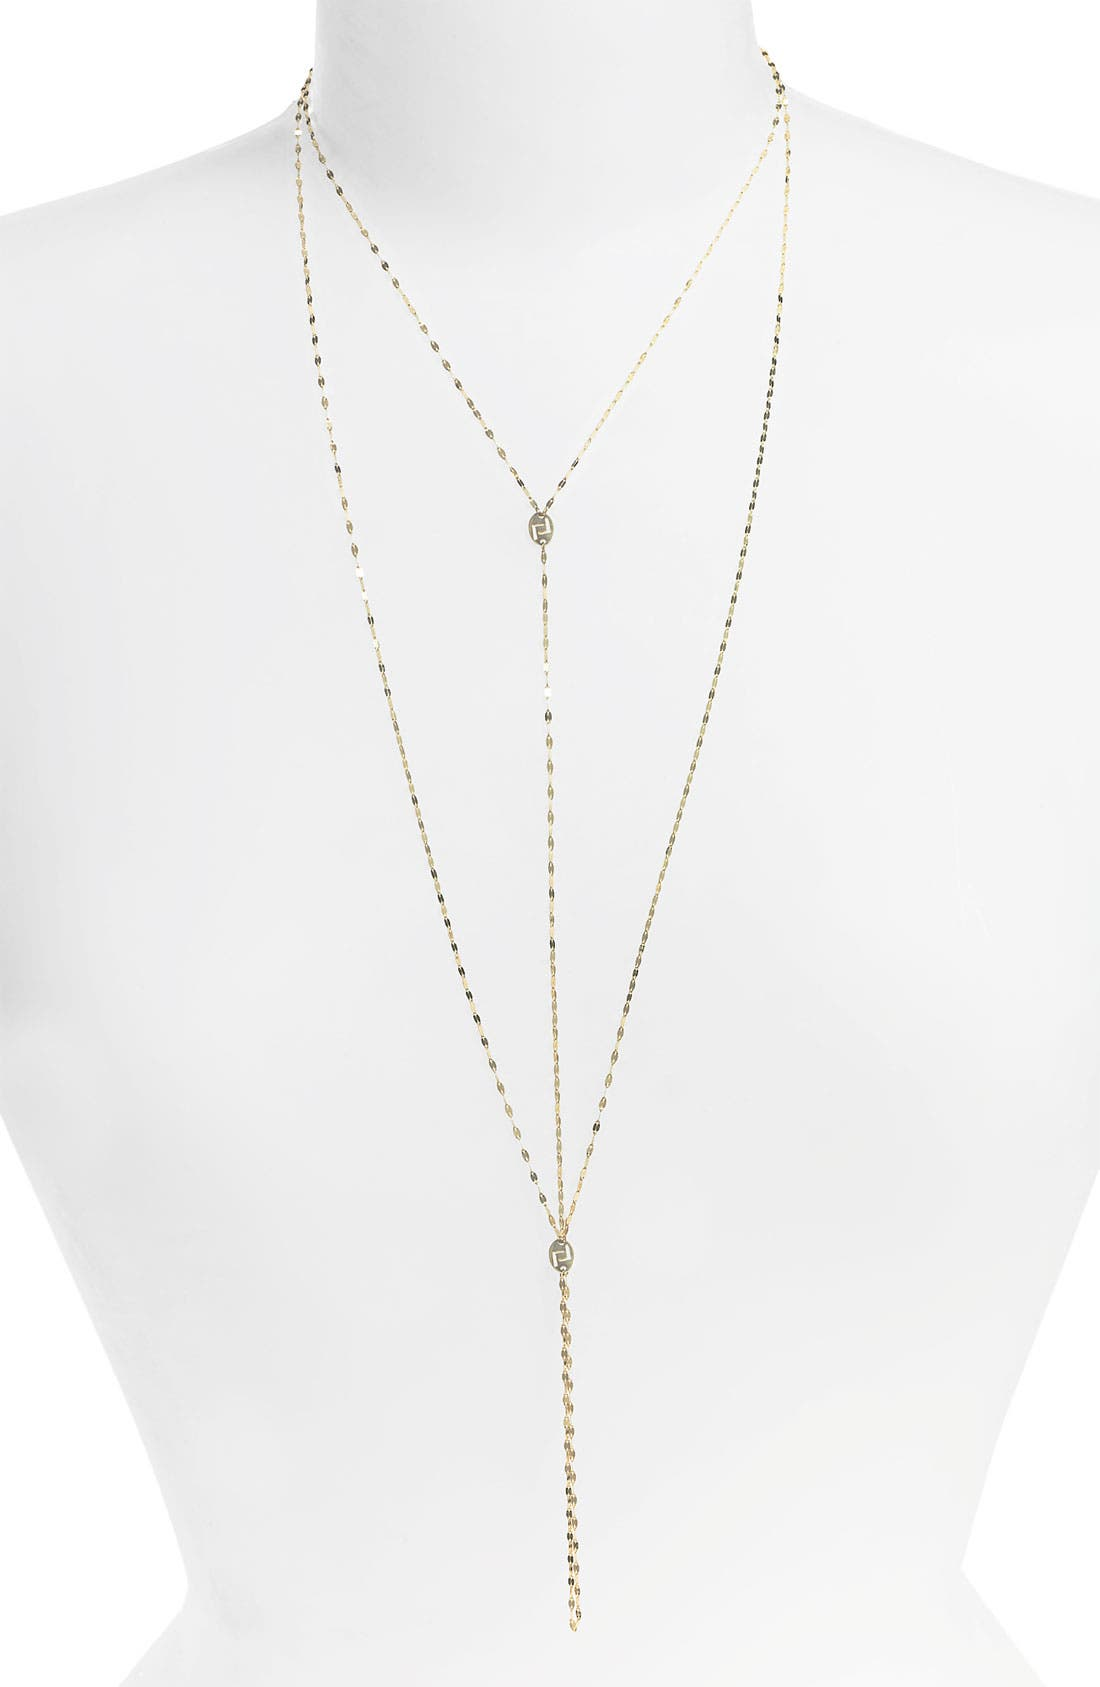 Main Image - Lana Jewelry 'Luck 'n' Love' Lariat Necklace